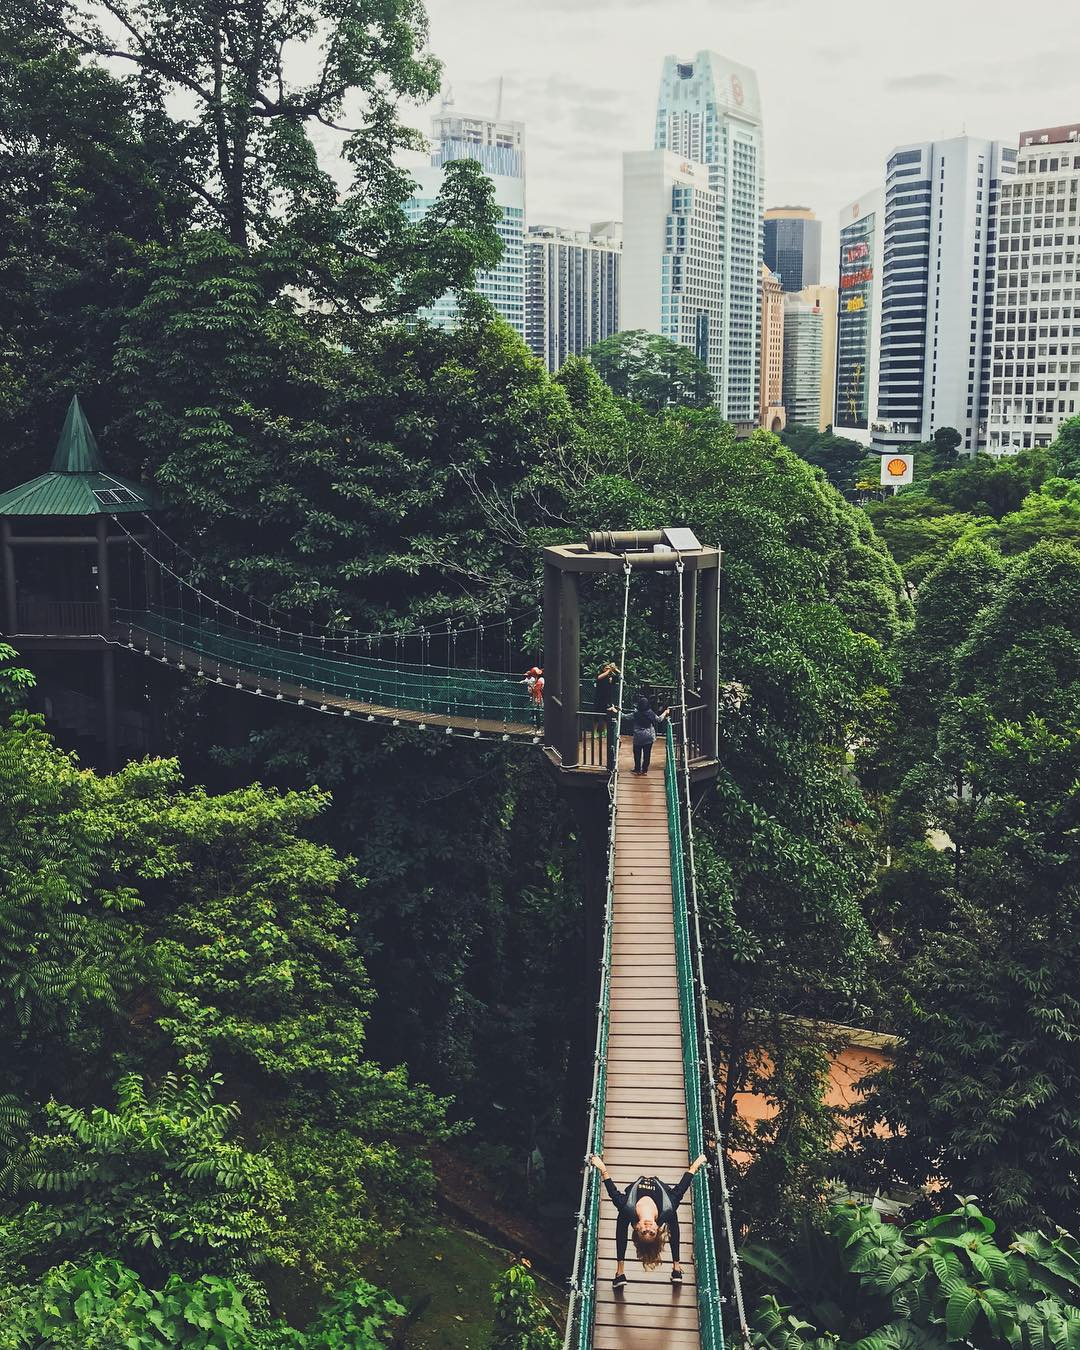 Ariela gets a new perspective on Kuala Lumpur